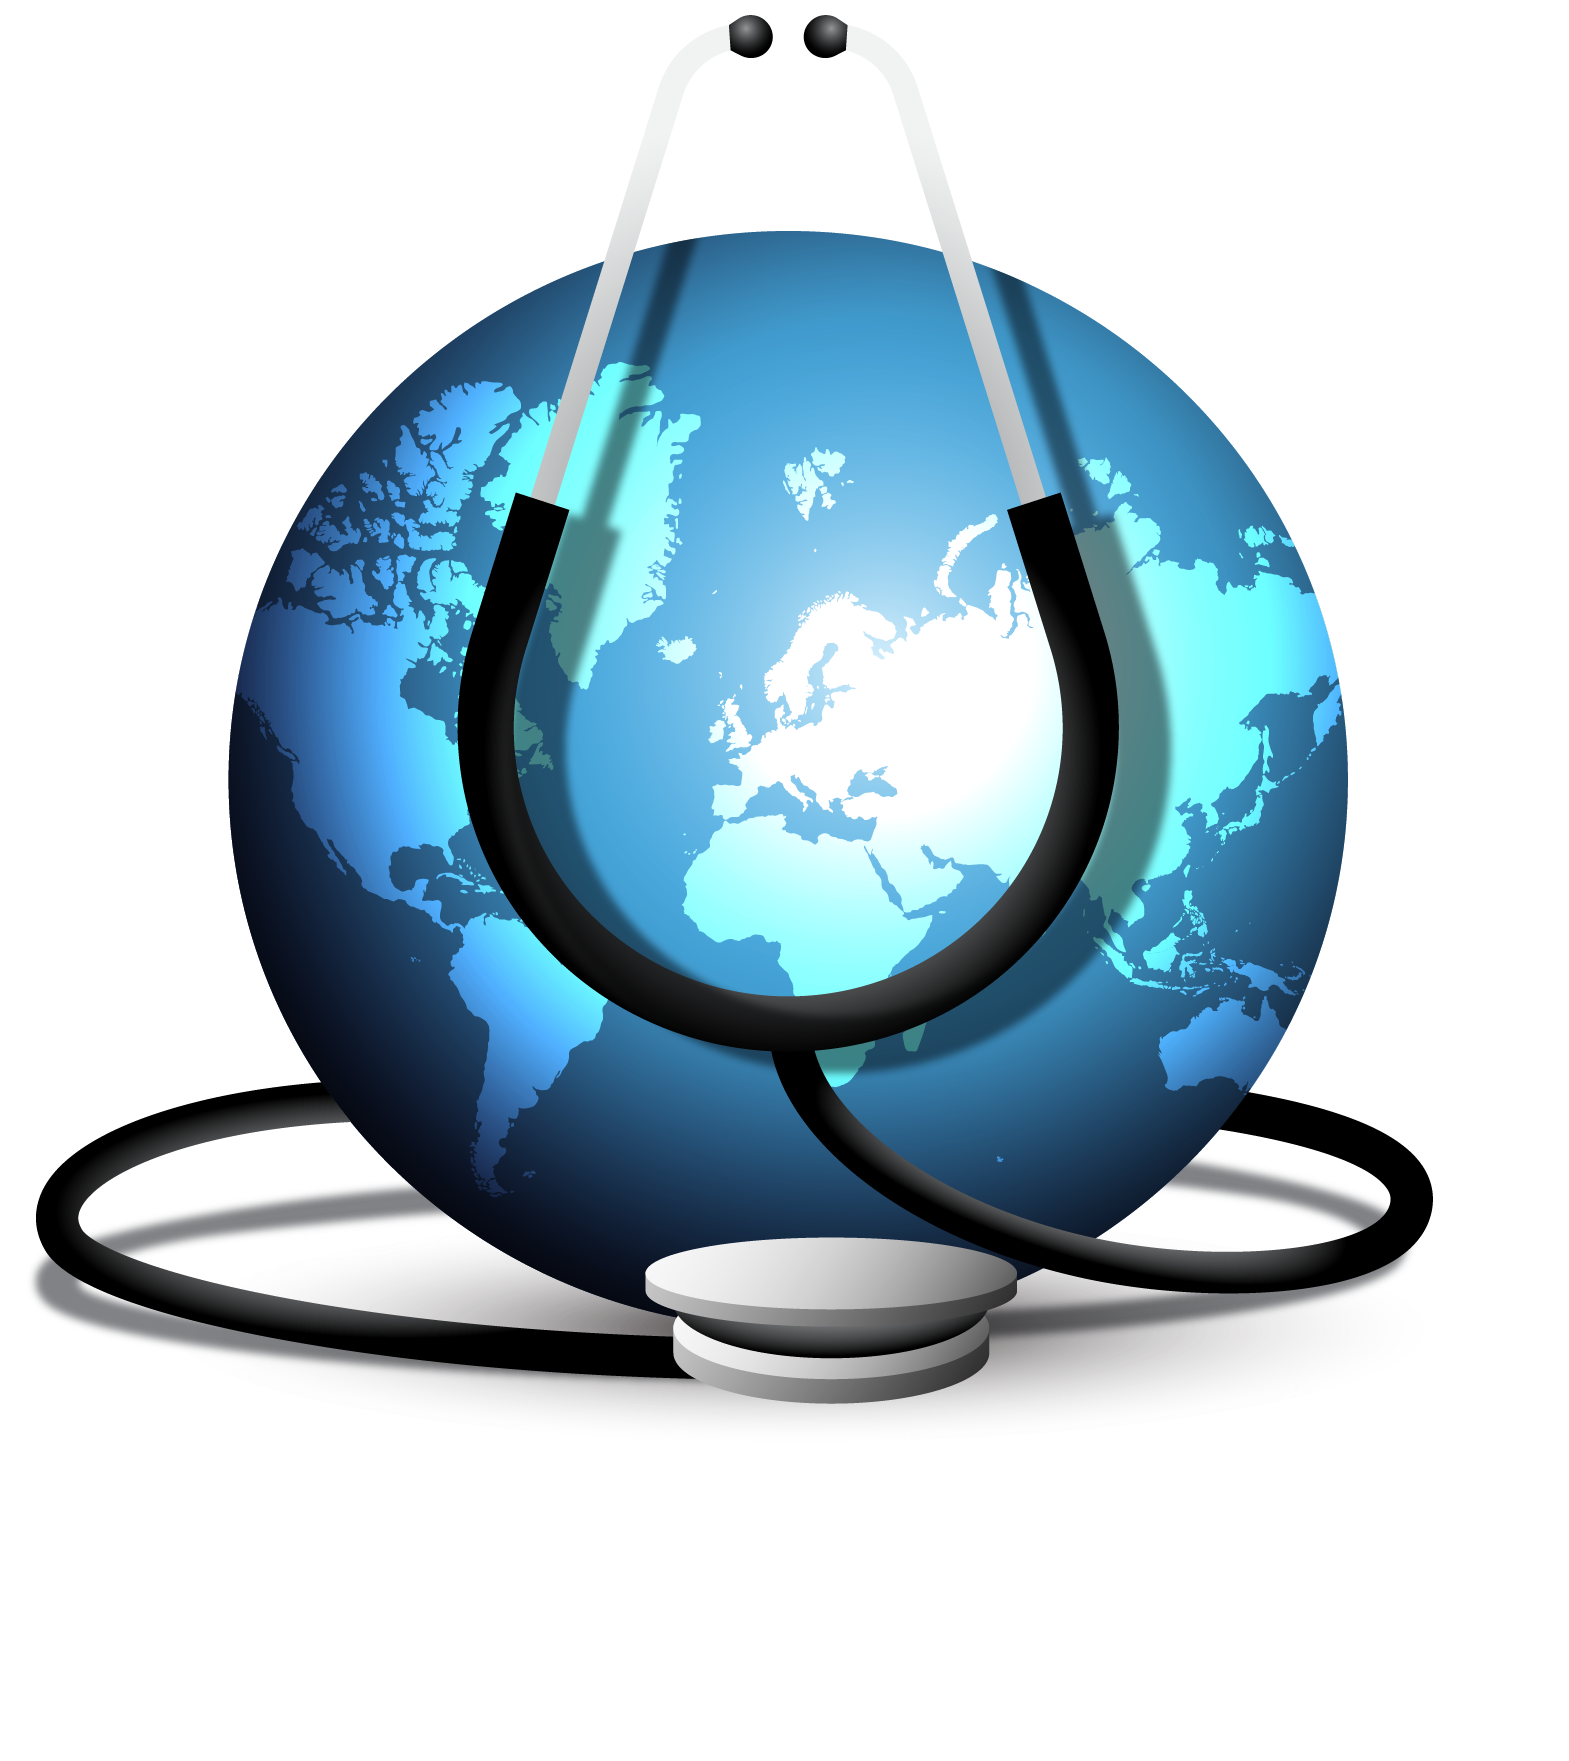 Globe Wallpaper Computer Health Medicine World Day PNG Image